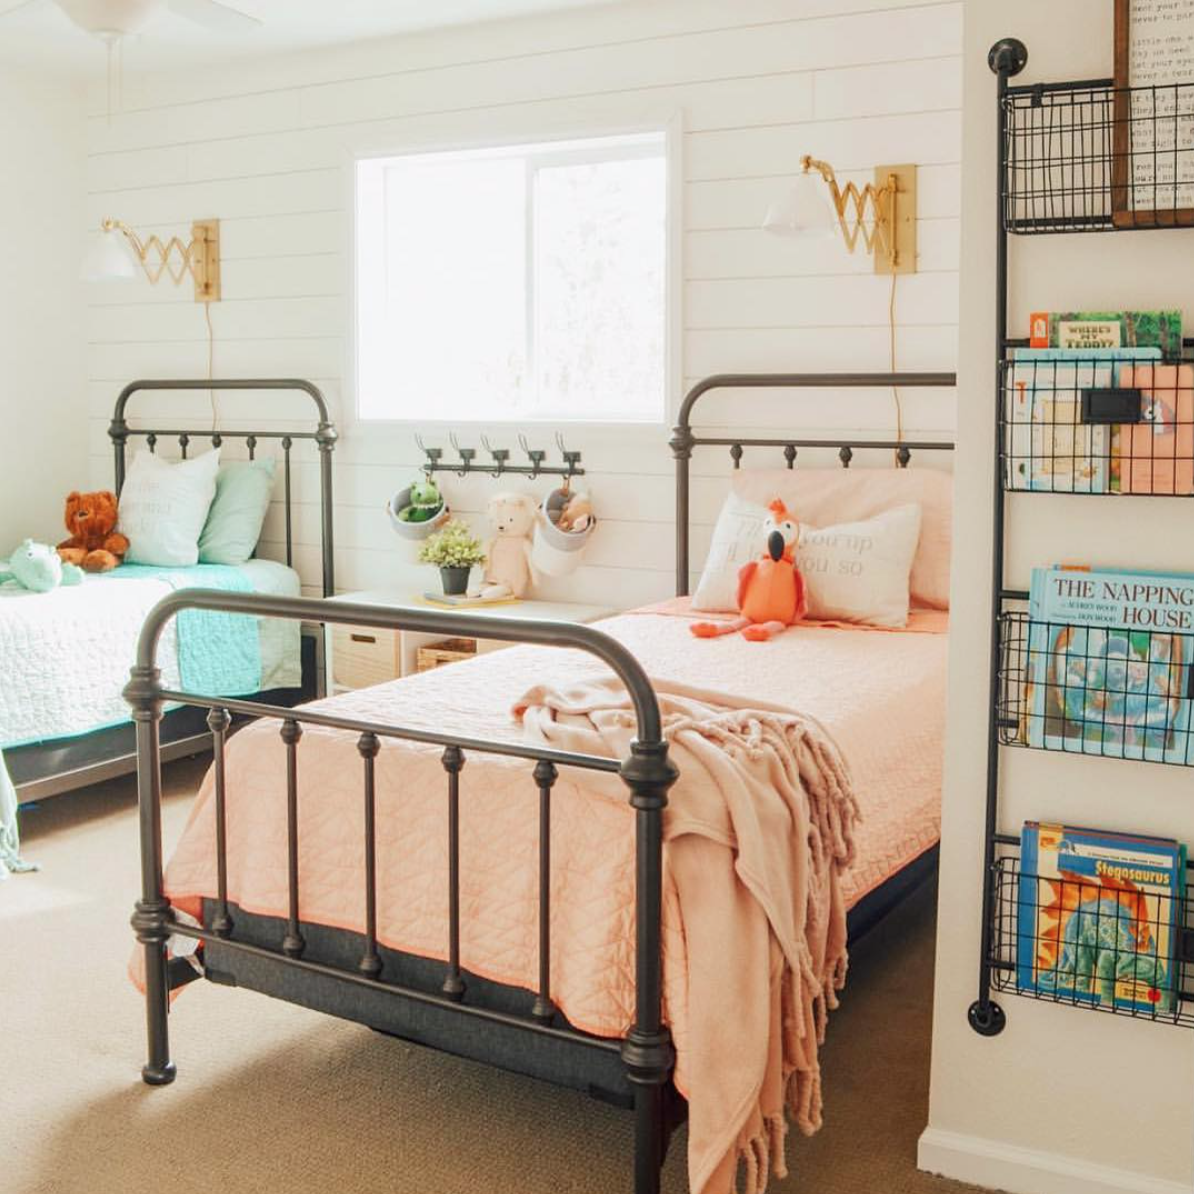 bedroom, brown floor, white woodplanks, black iron bed platform, orange bedding, blue bedding, sconces, black iron sheles